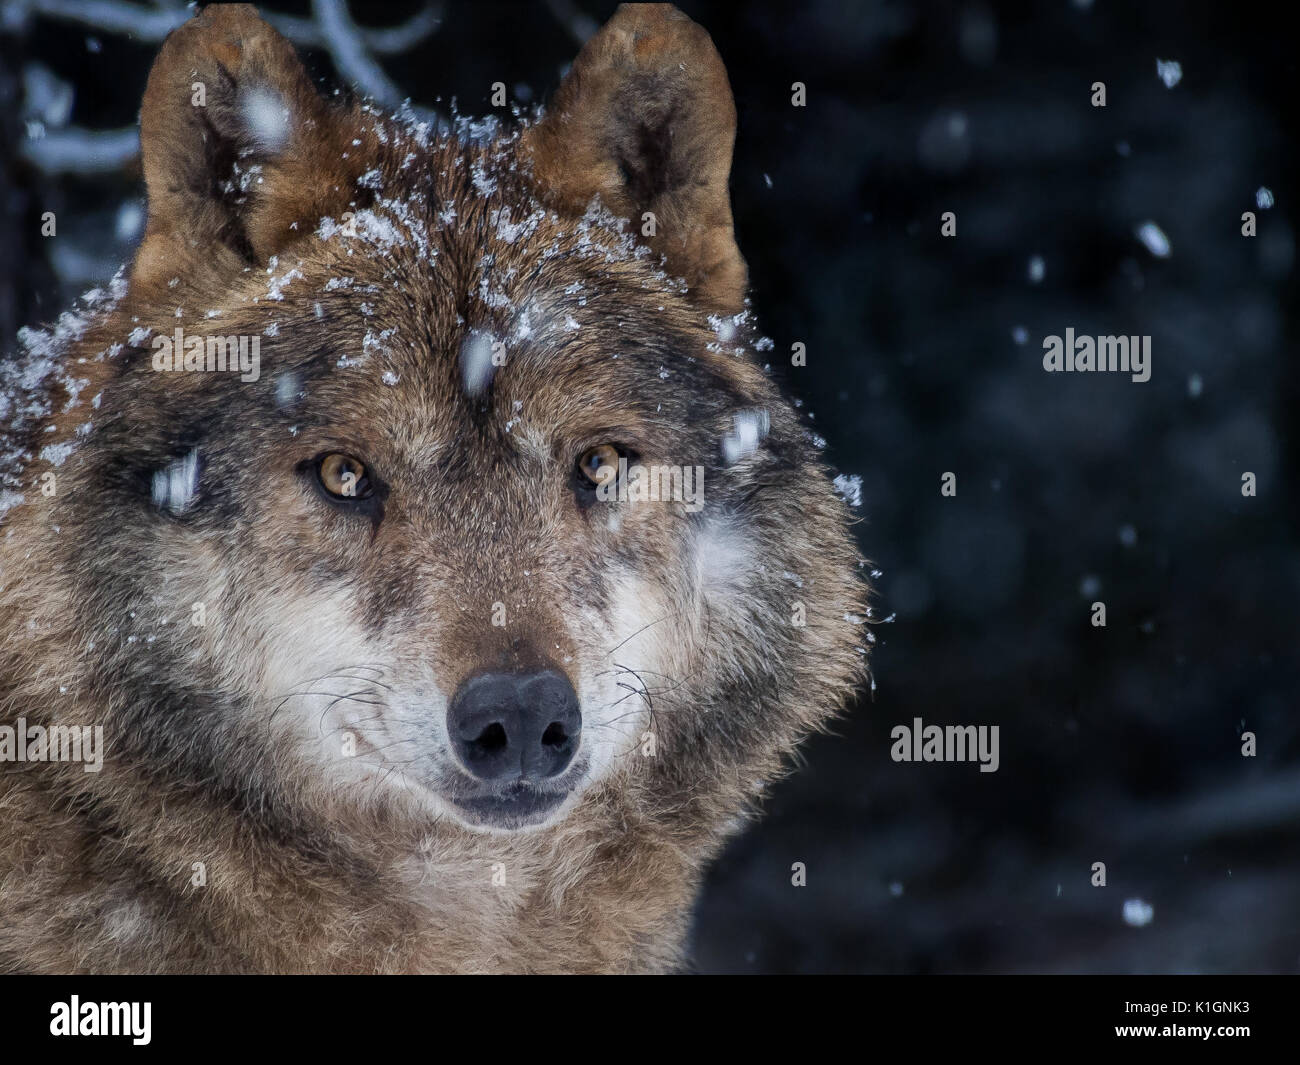 Iberian wolf (Canis lupus signatus) in the snow in the forest in winter - Stock Image